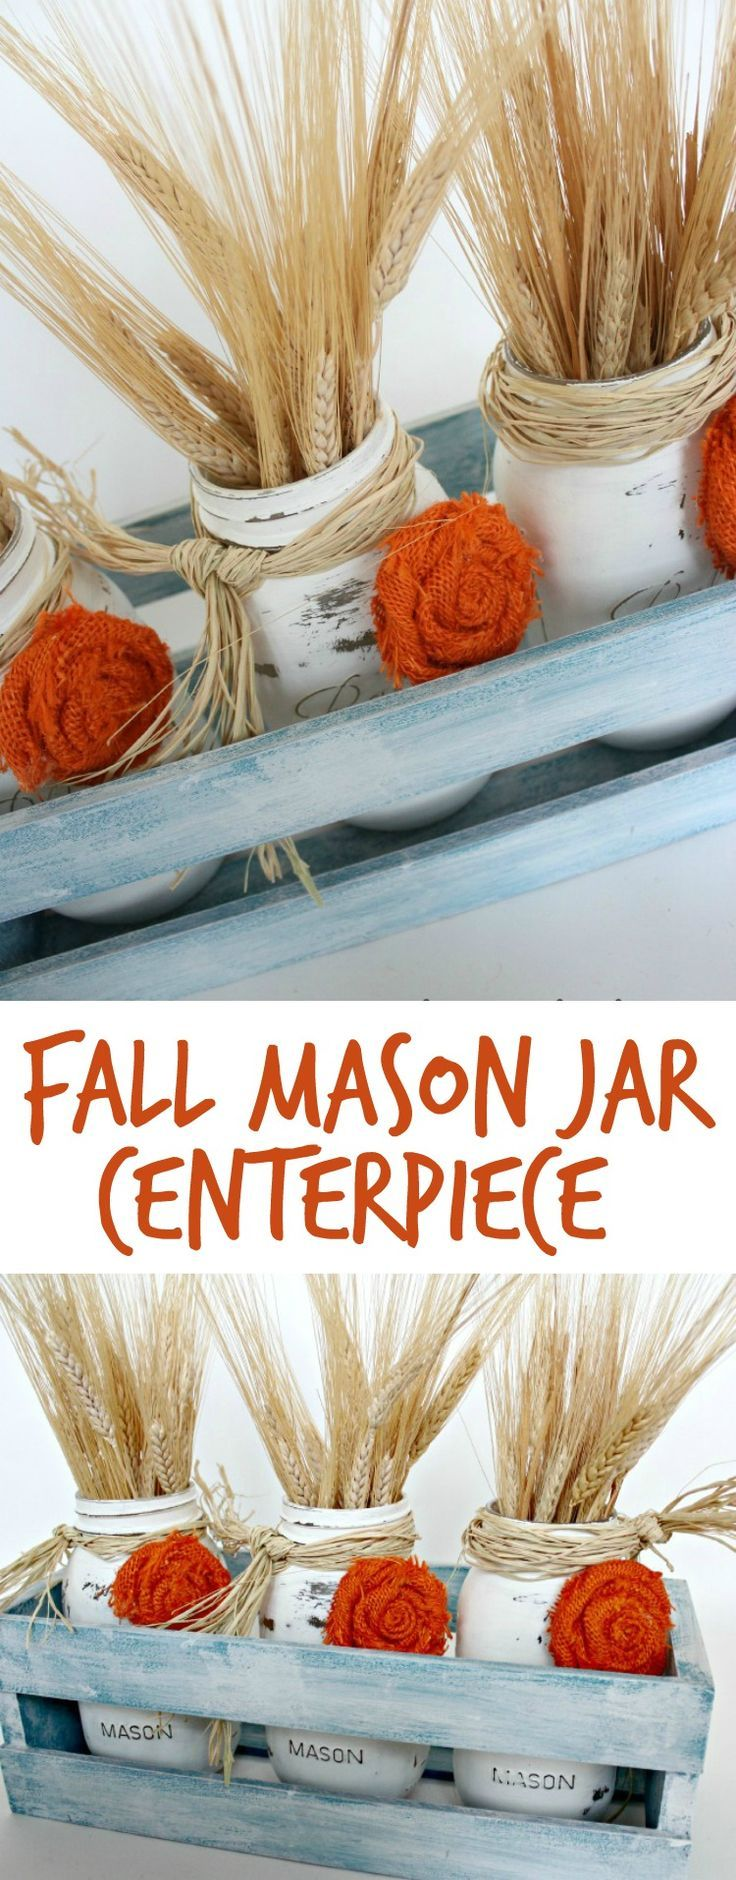 fall mason jar centerpieces and how to make burlap rosettes